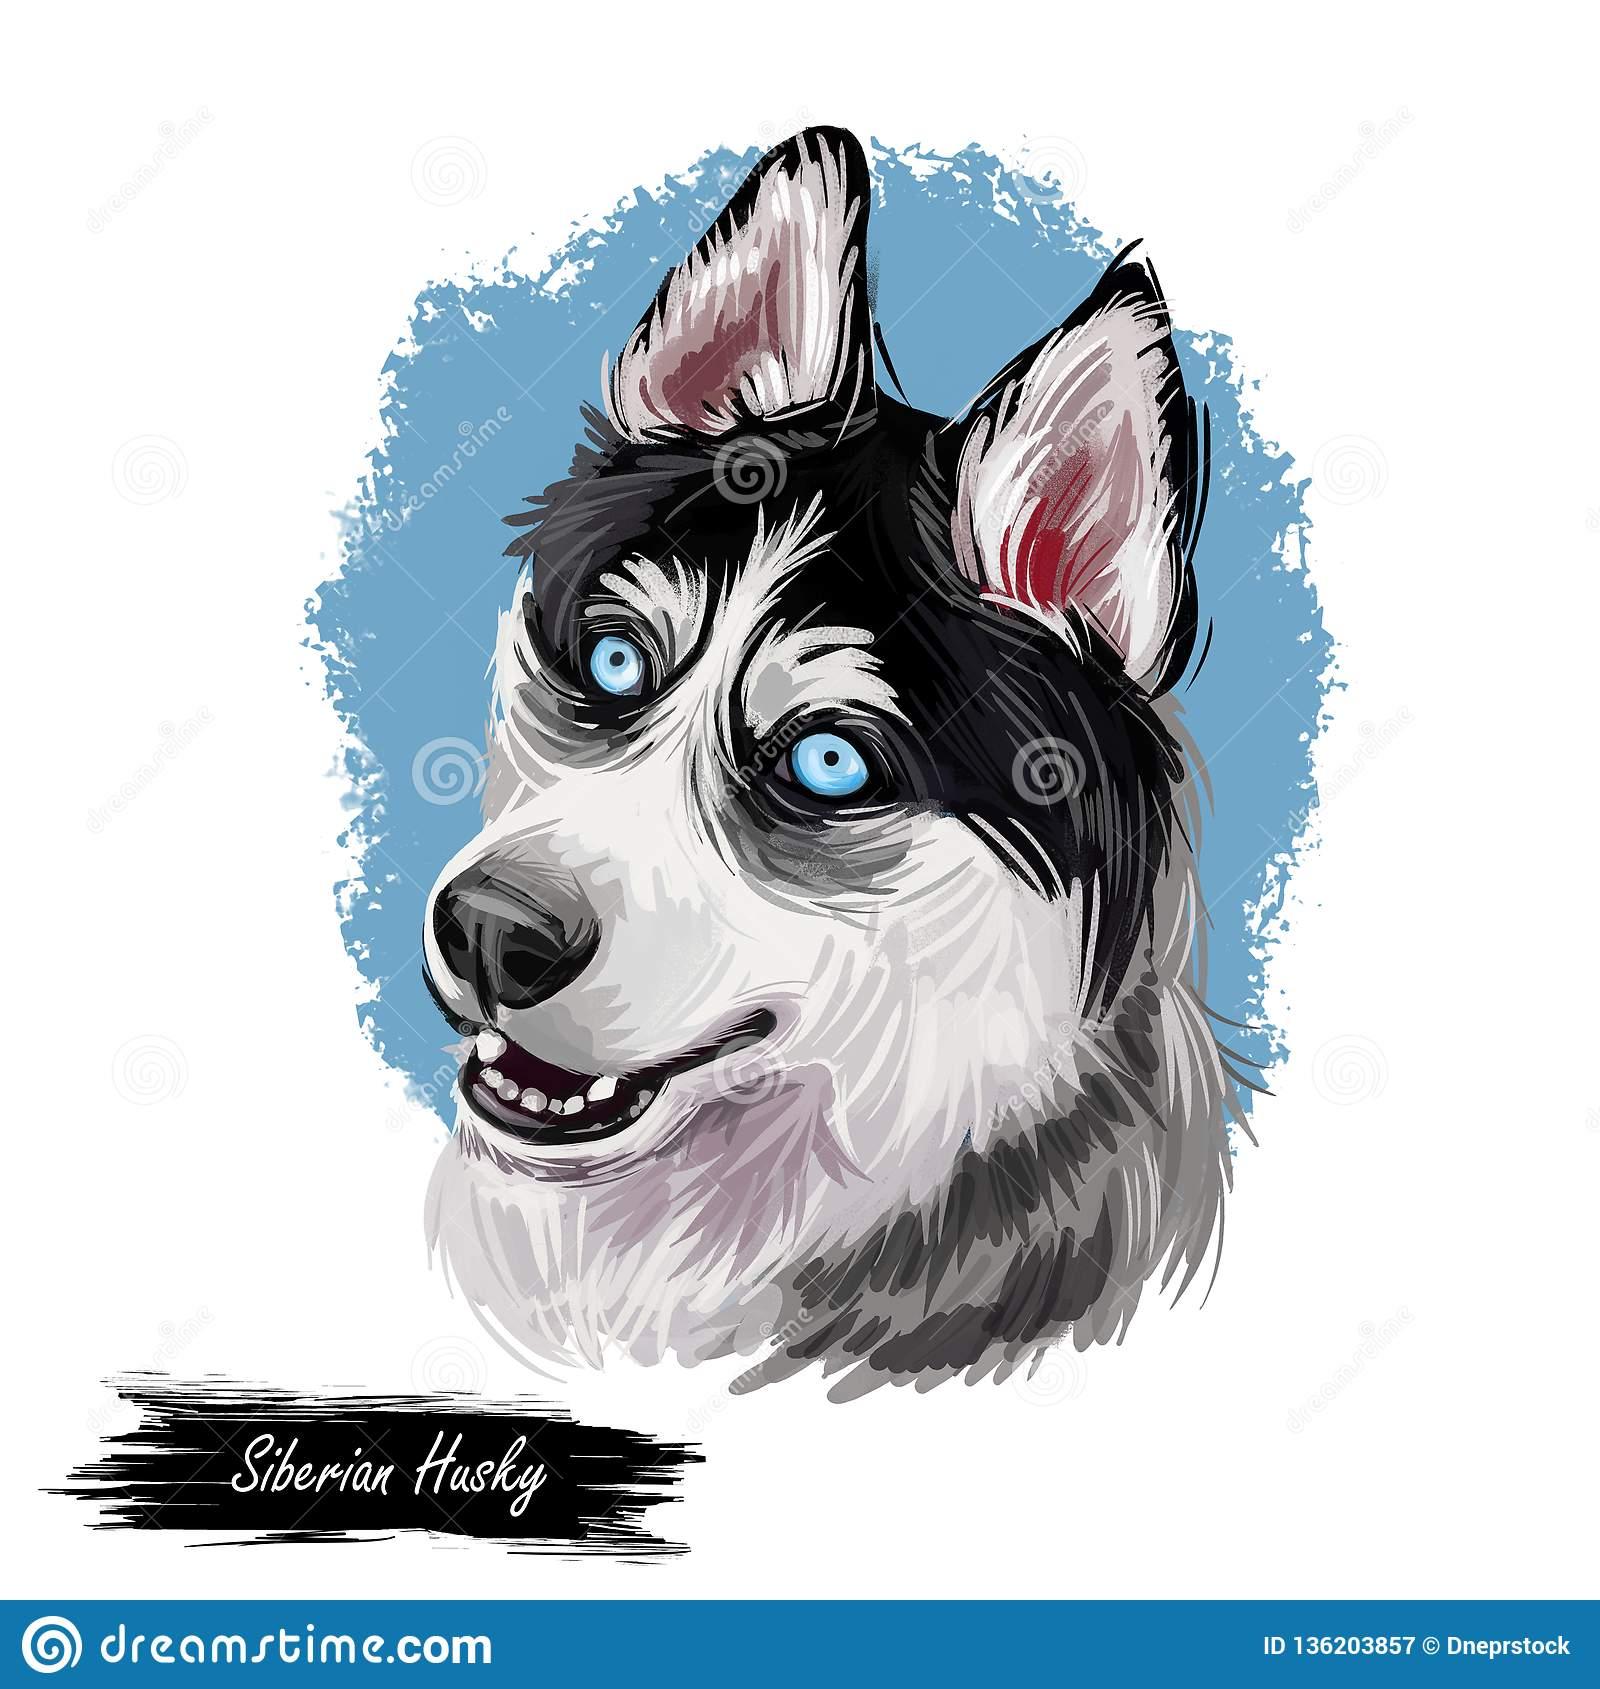 Siberian Husky dog hound with clear eyes digital art. Animal watercolor portrait closeup isolated muzzle of pet, canine